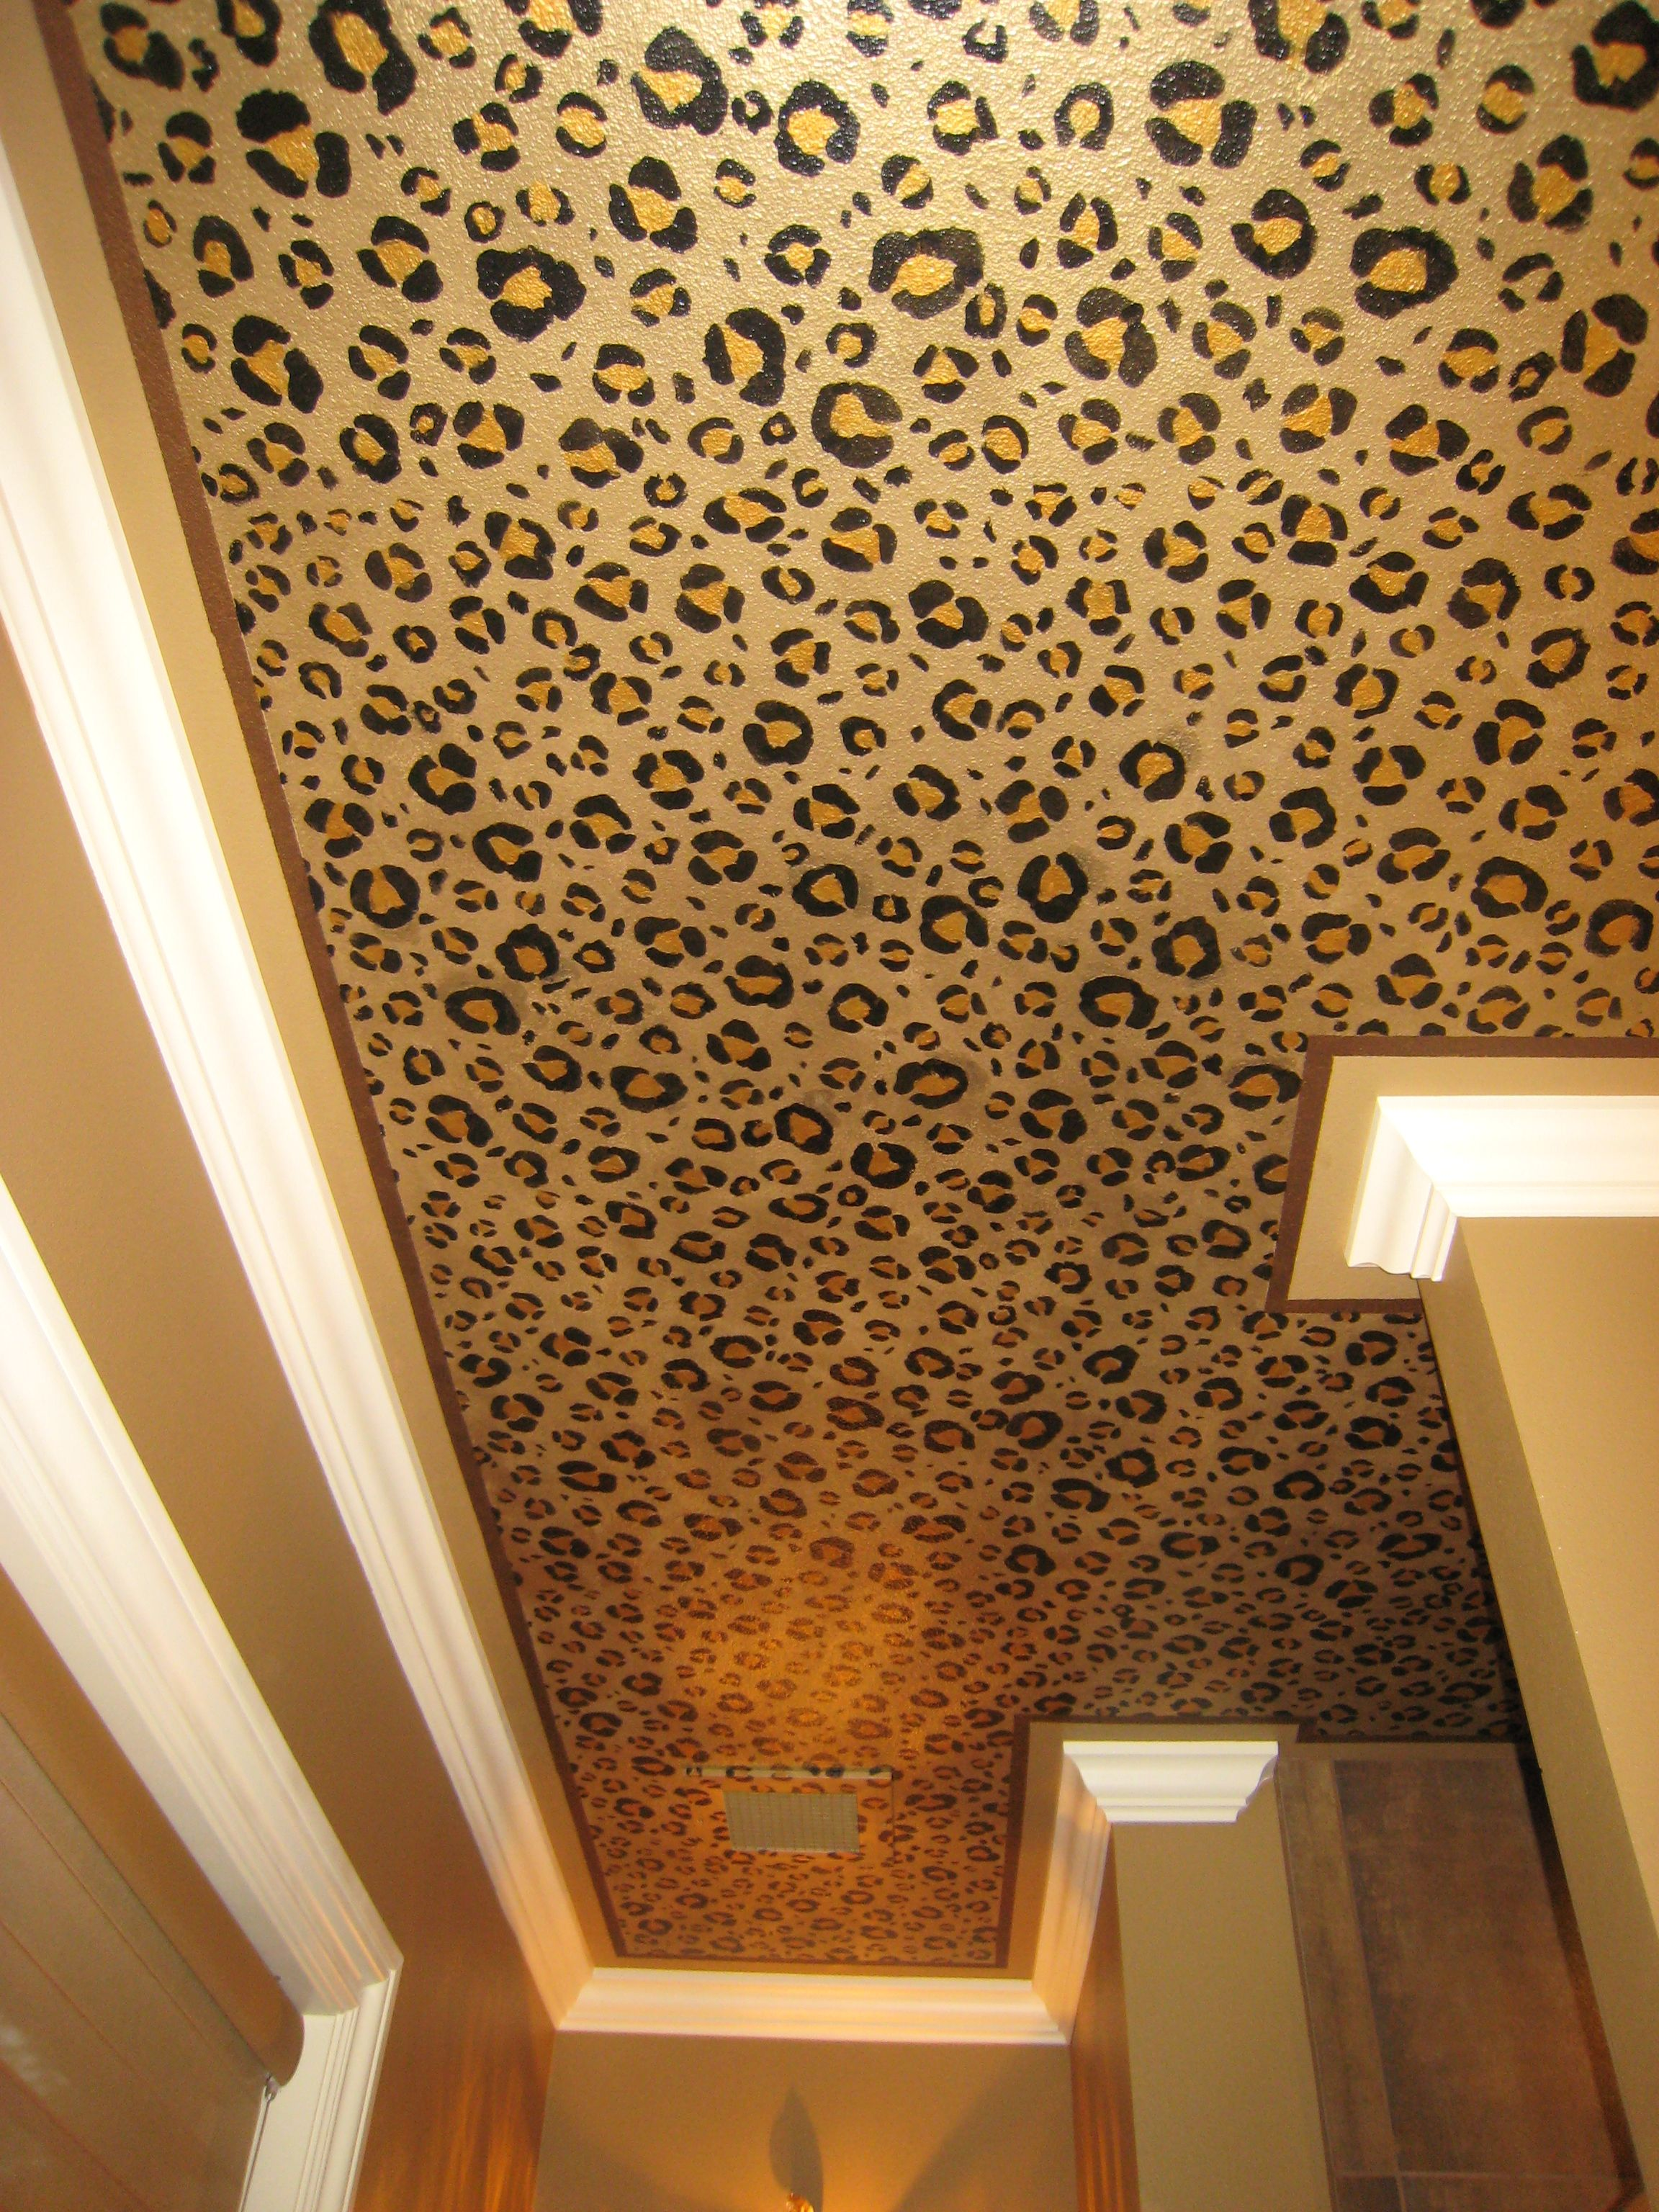 leopard ceiling for my future bachelorette pad hahaha